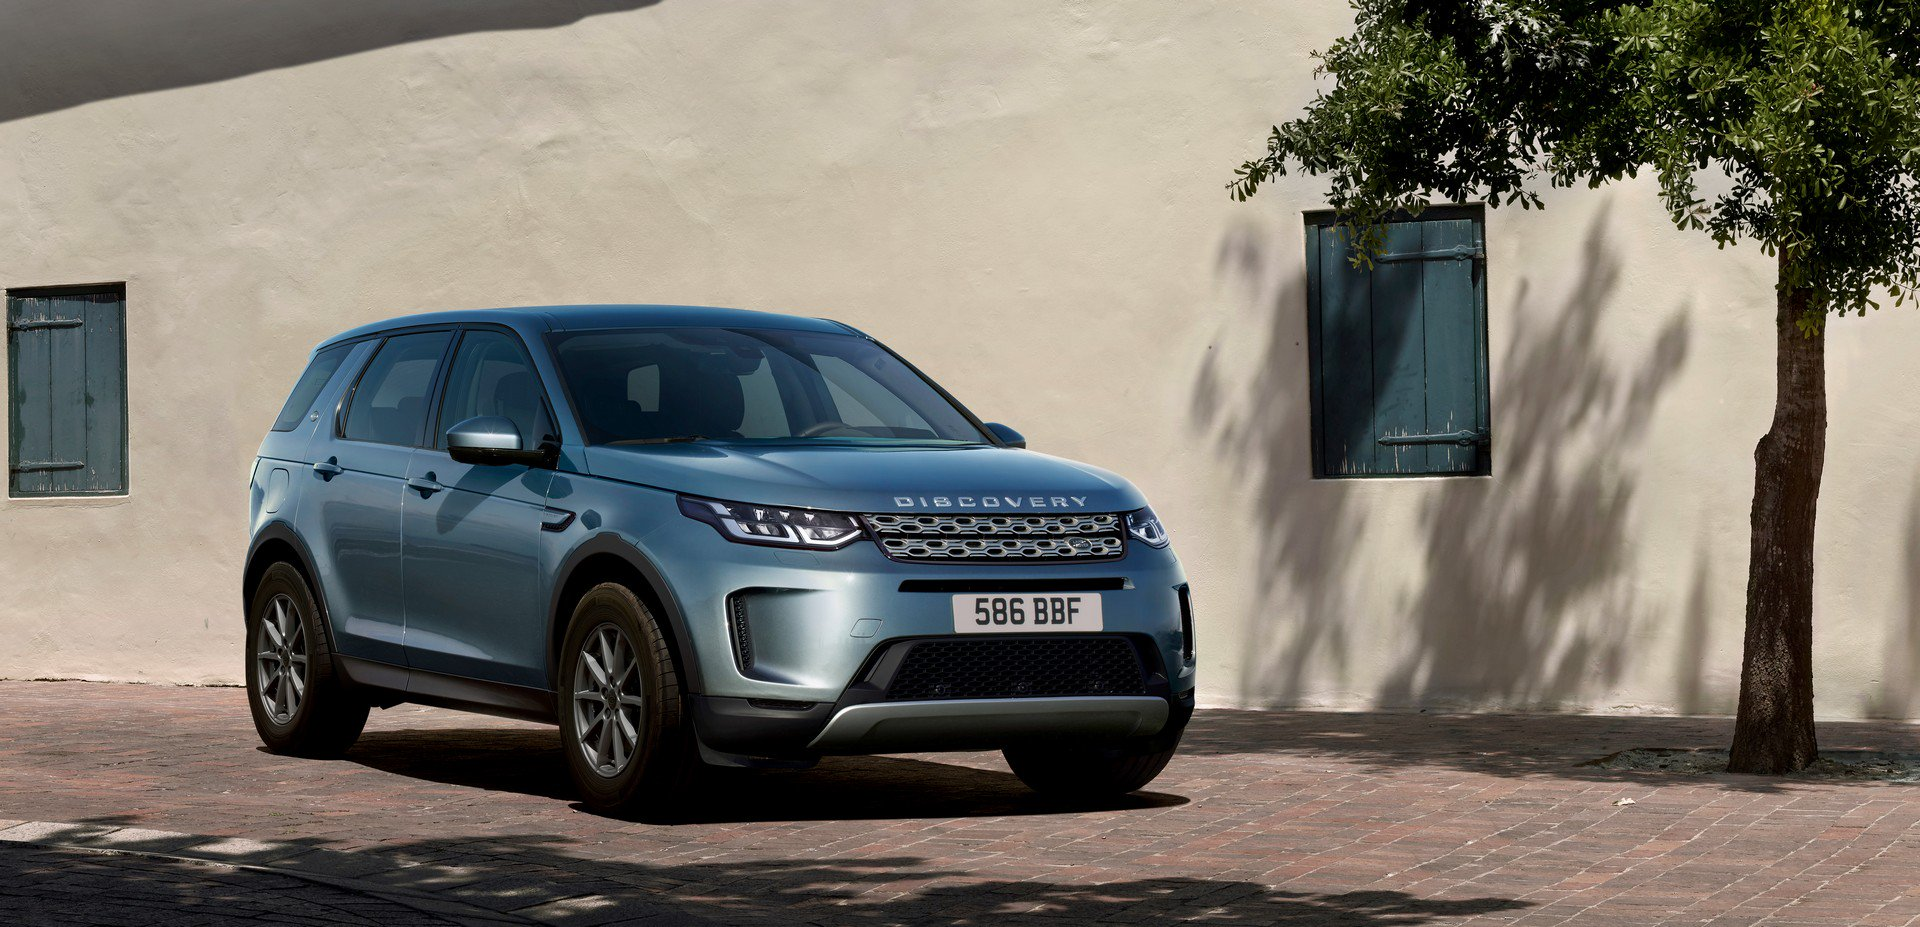 Land Rover Discovery Sport >> 2020 Land Rover Discovery Sport Gets Mild-Hybrid System From Range Rover Evoque - autoevolution